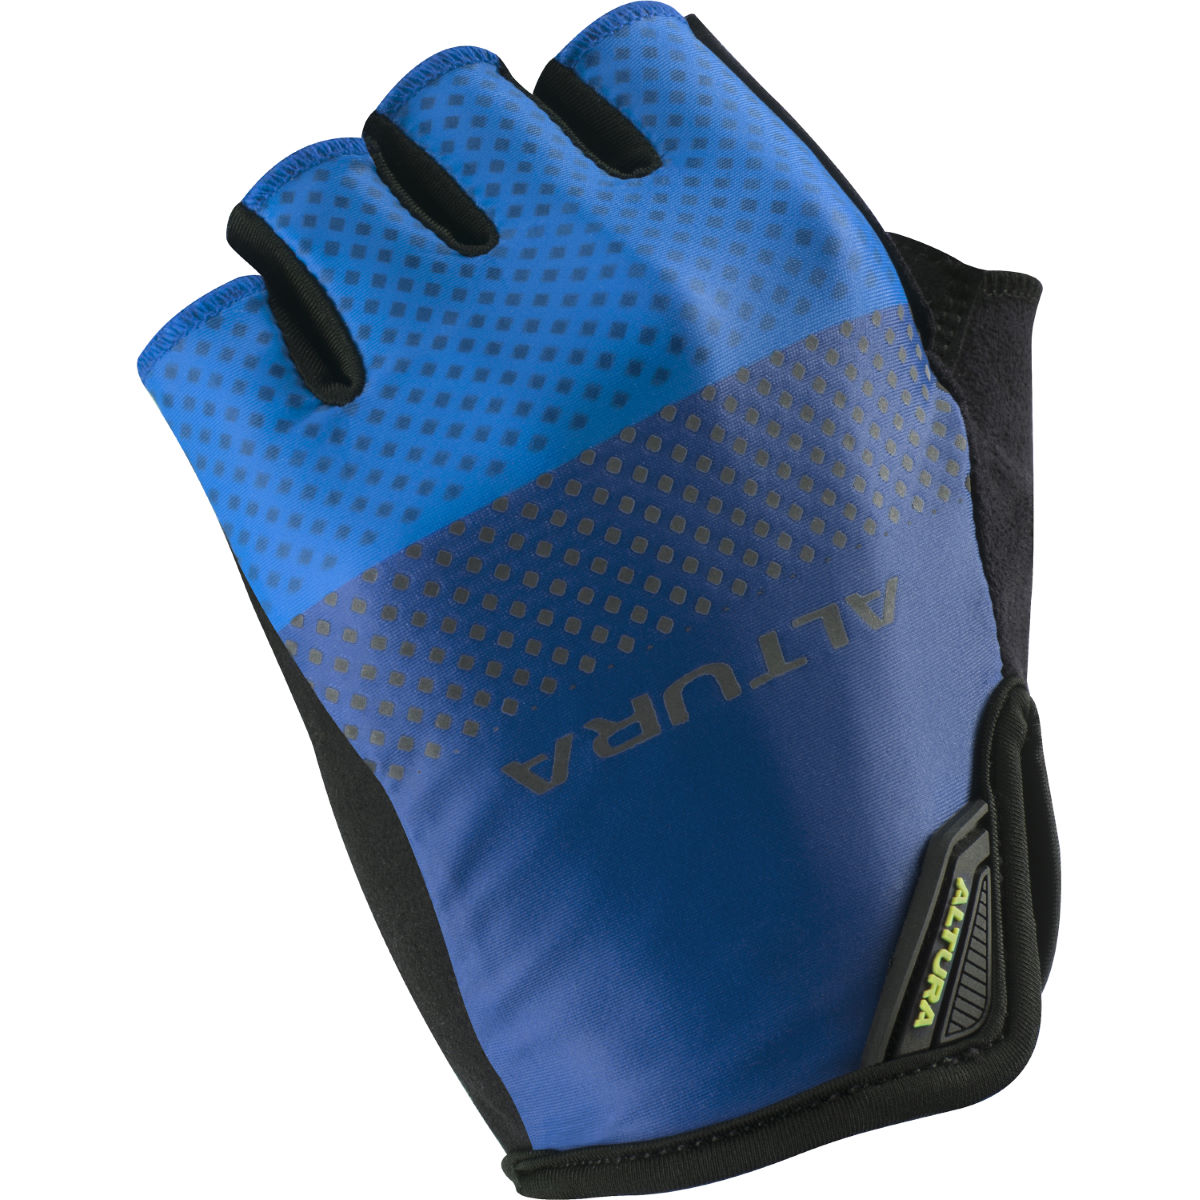 Altura Progel 3 Mitts - L Blue/Royal Blue | Short Finger Gloves